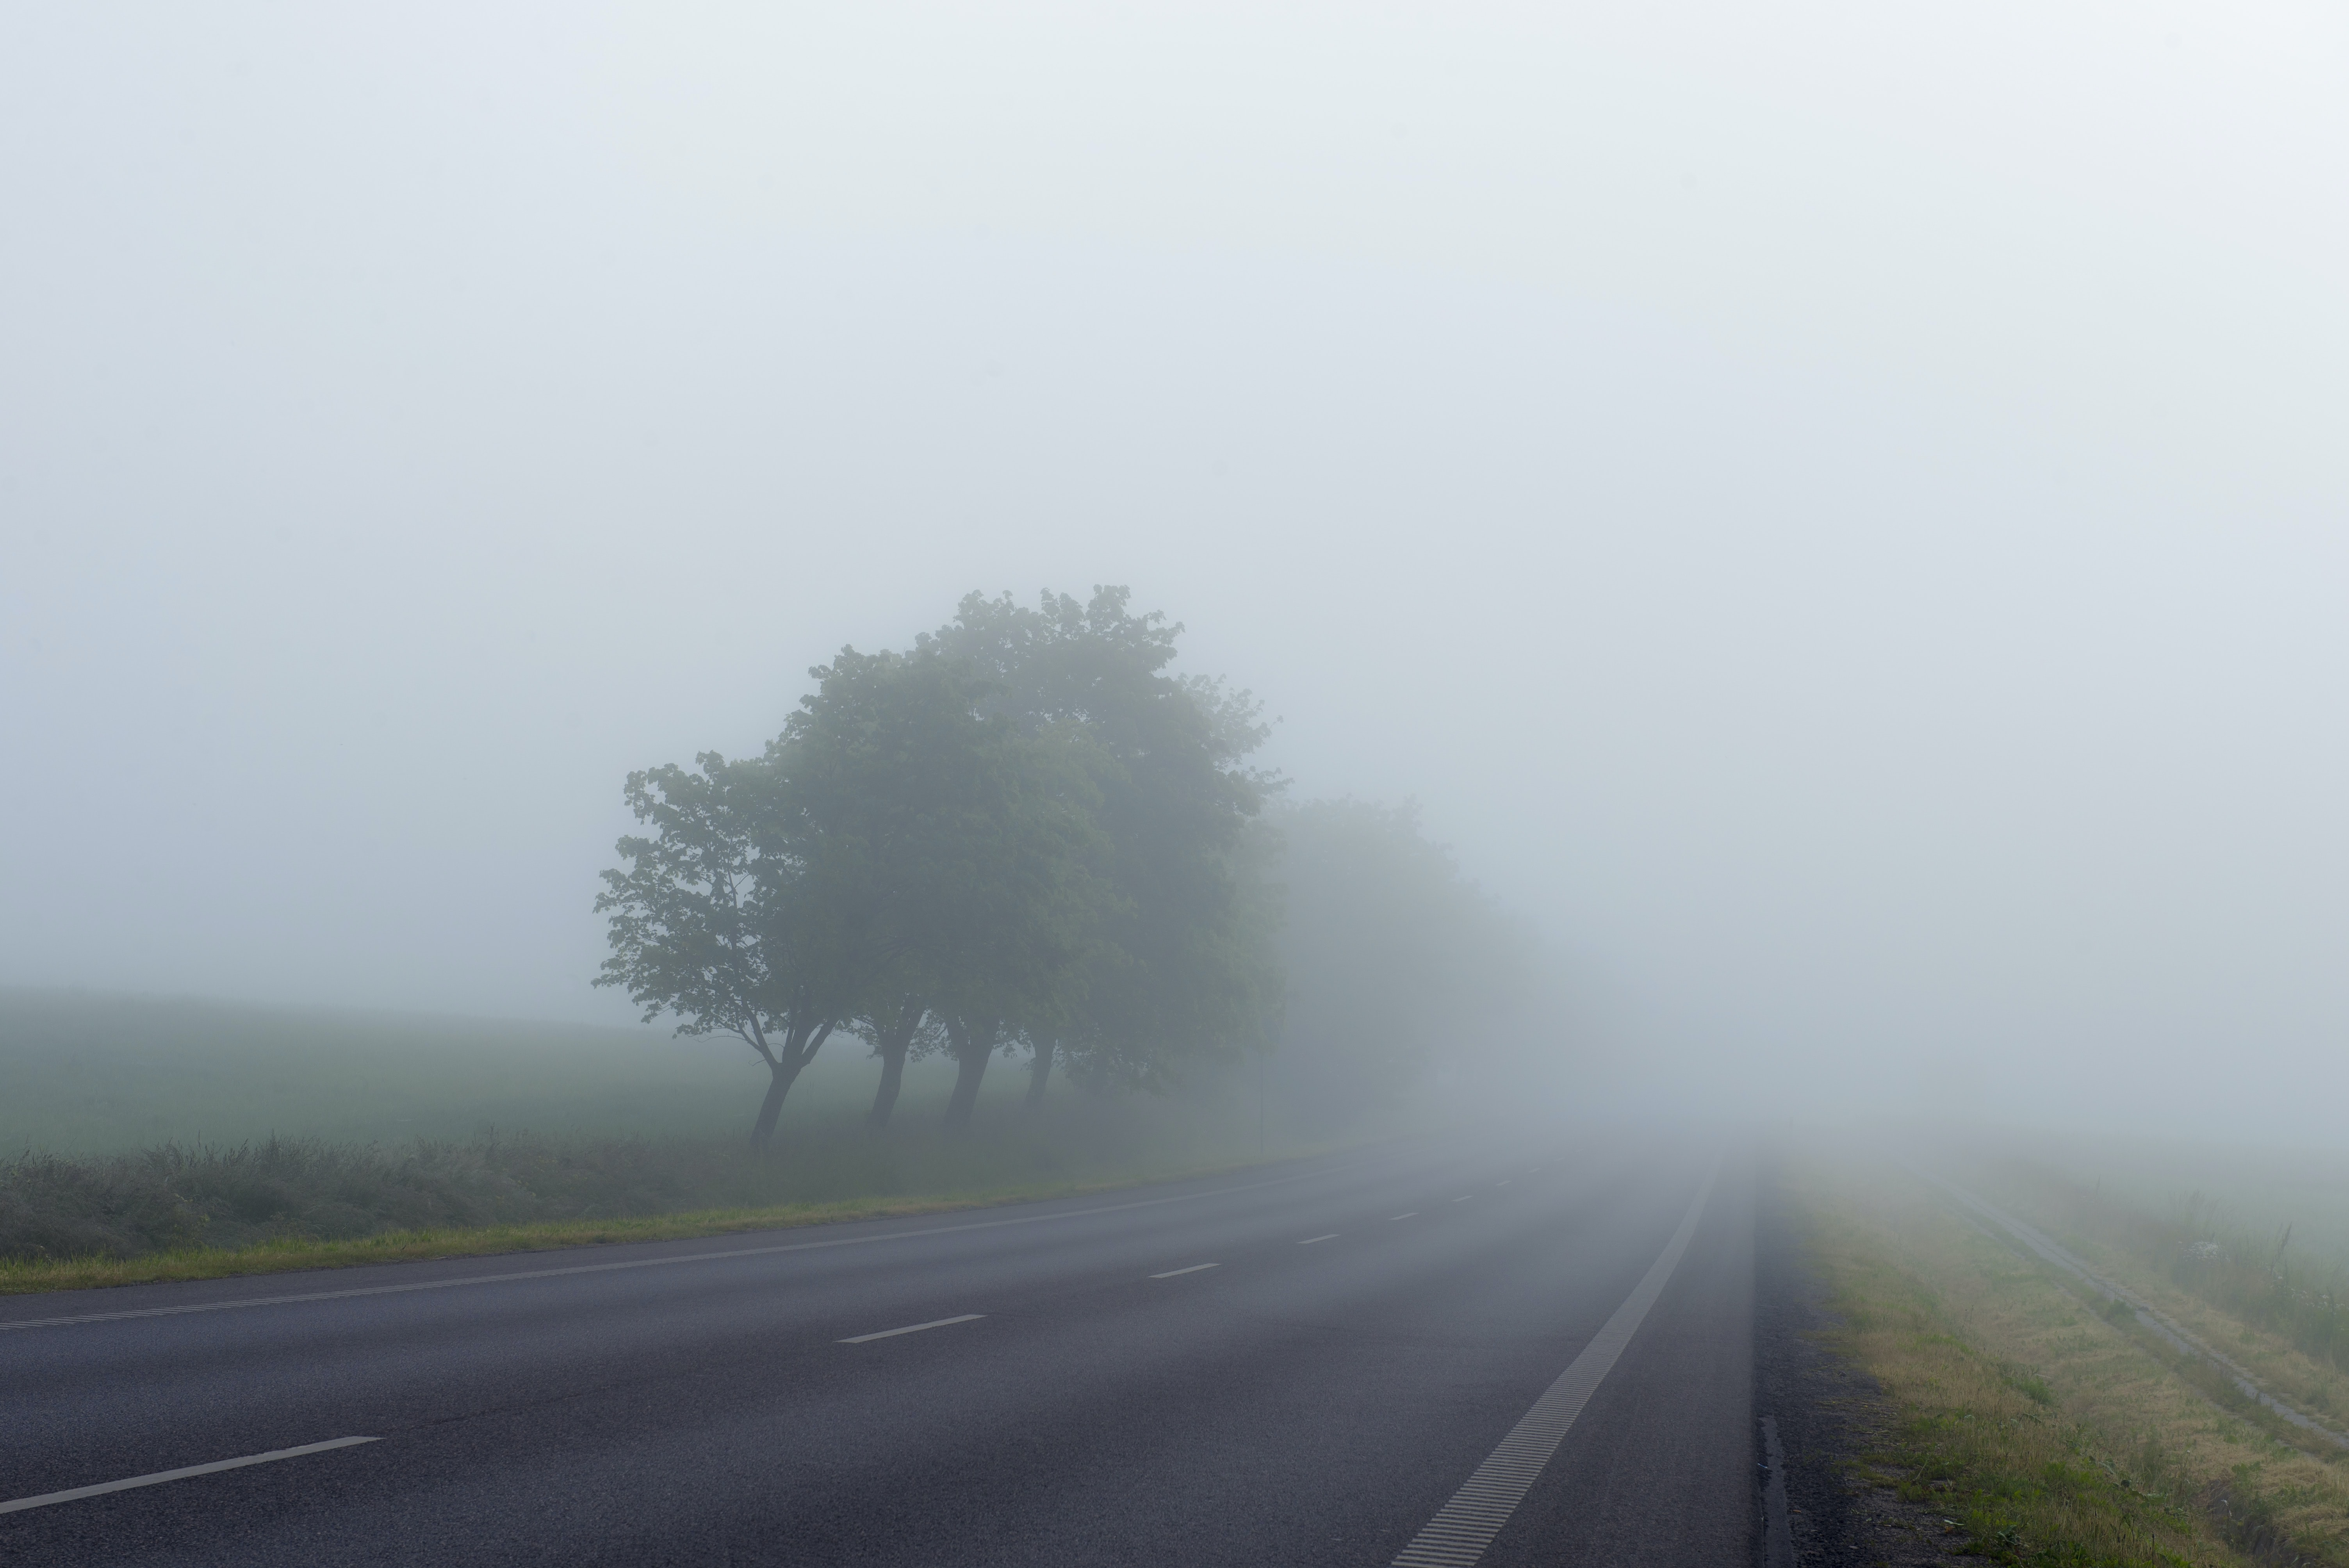 landscape photography of freeway surrounded with fogs